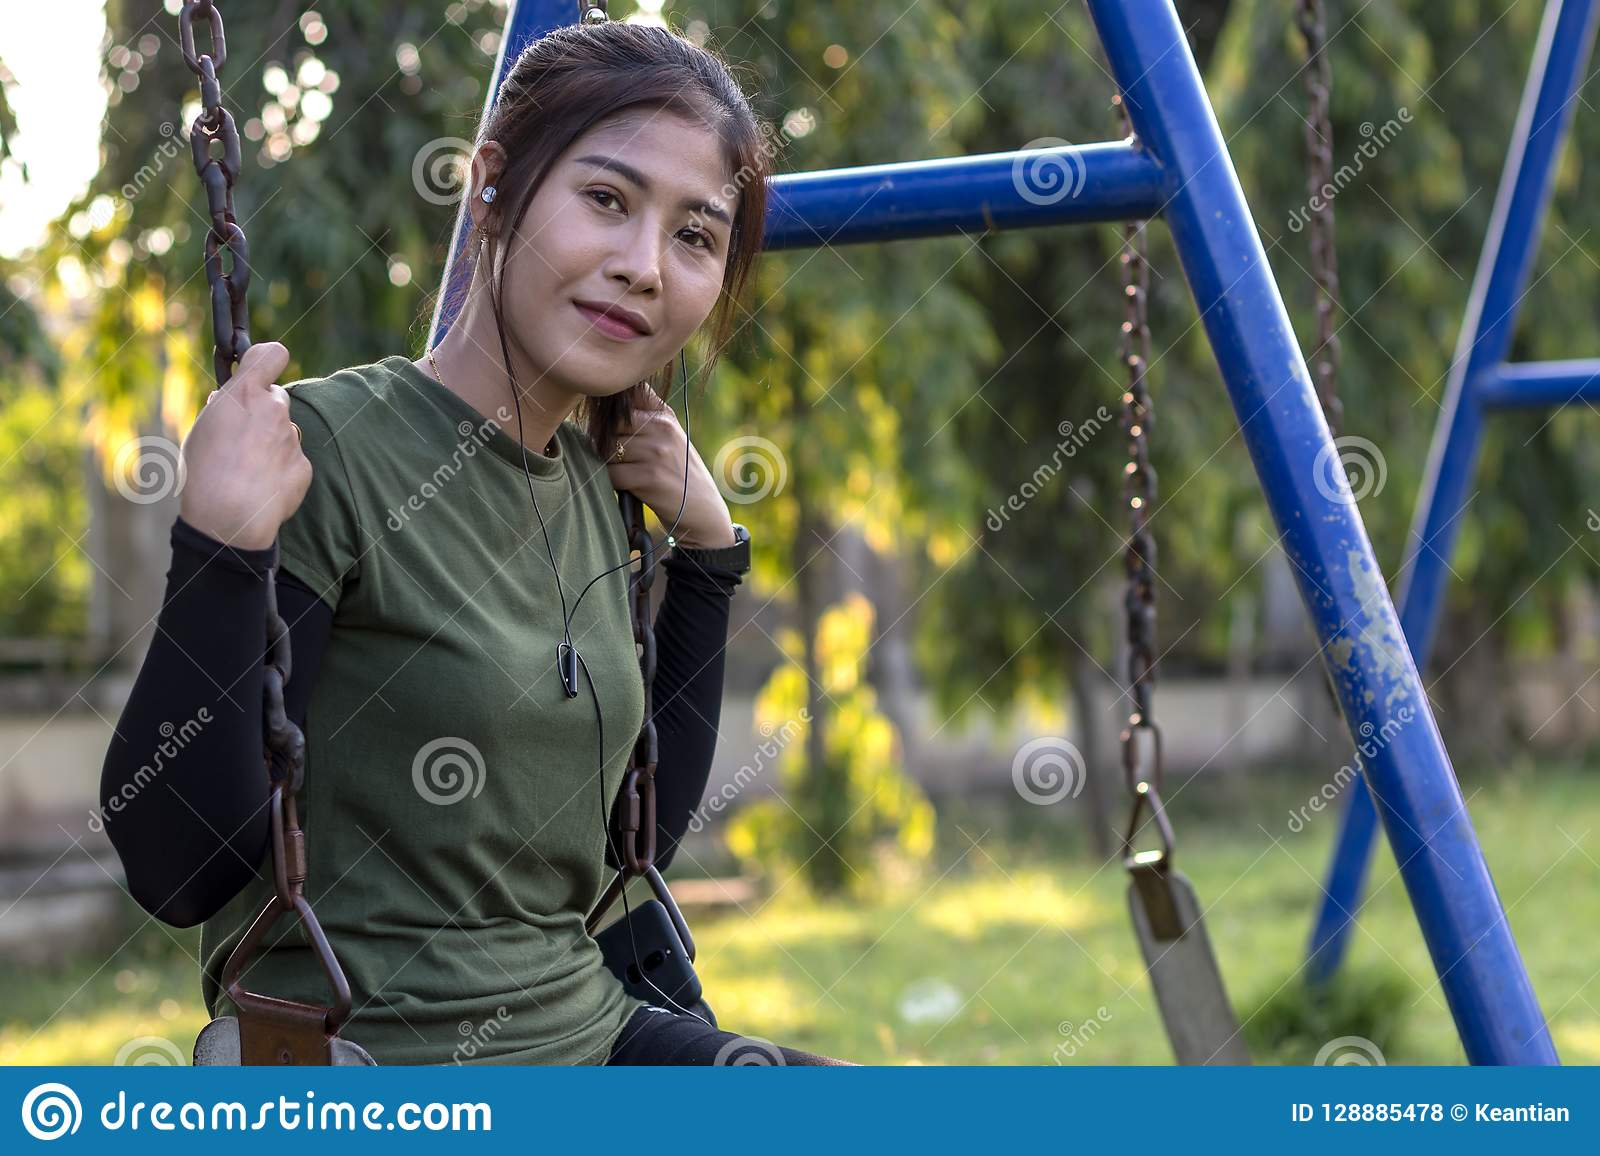 Teenage girl sitting on a swing chain smiling.